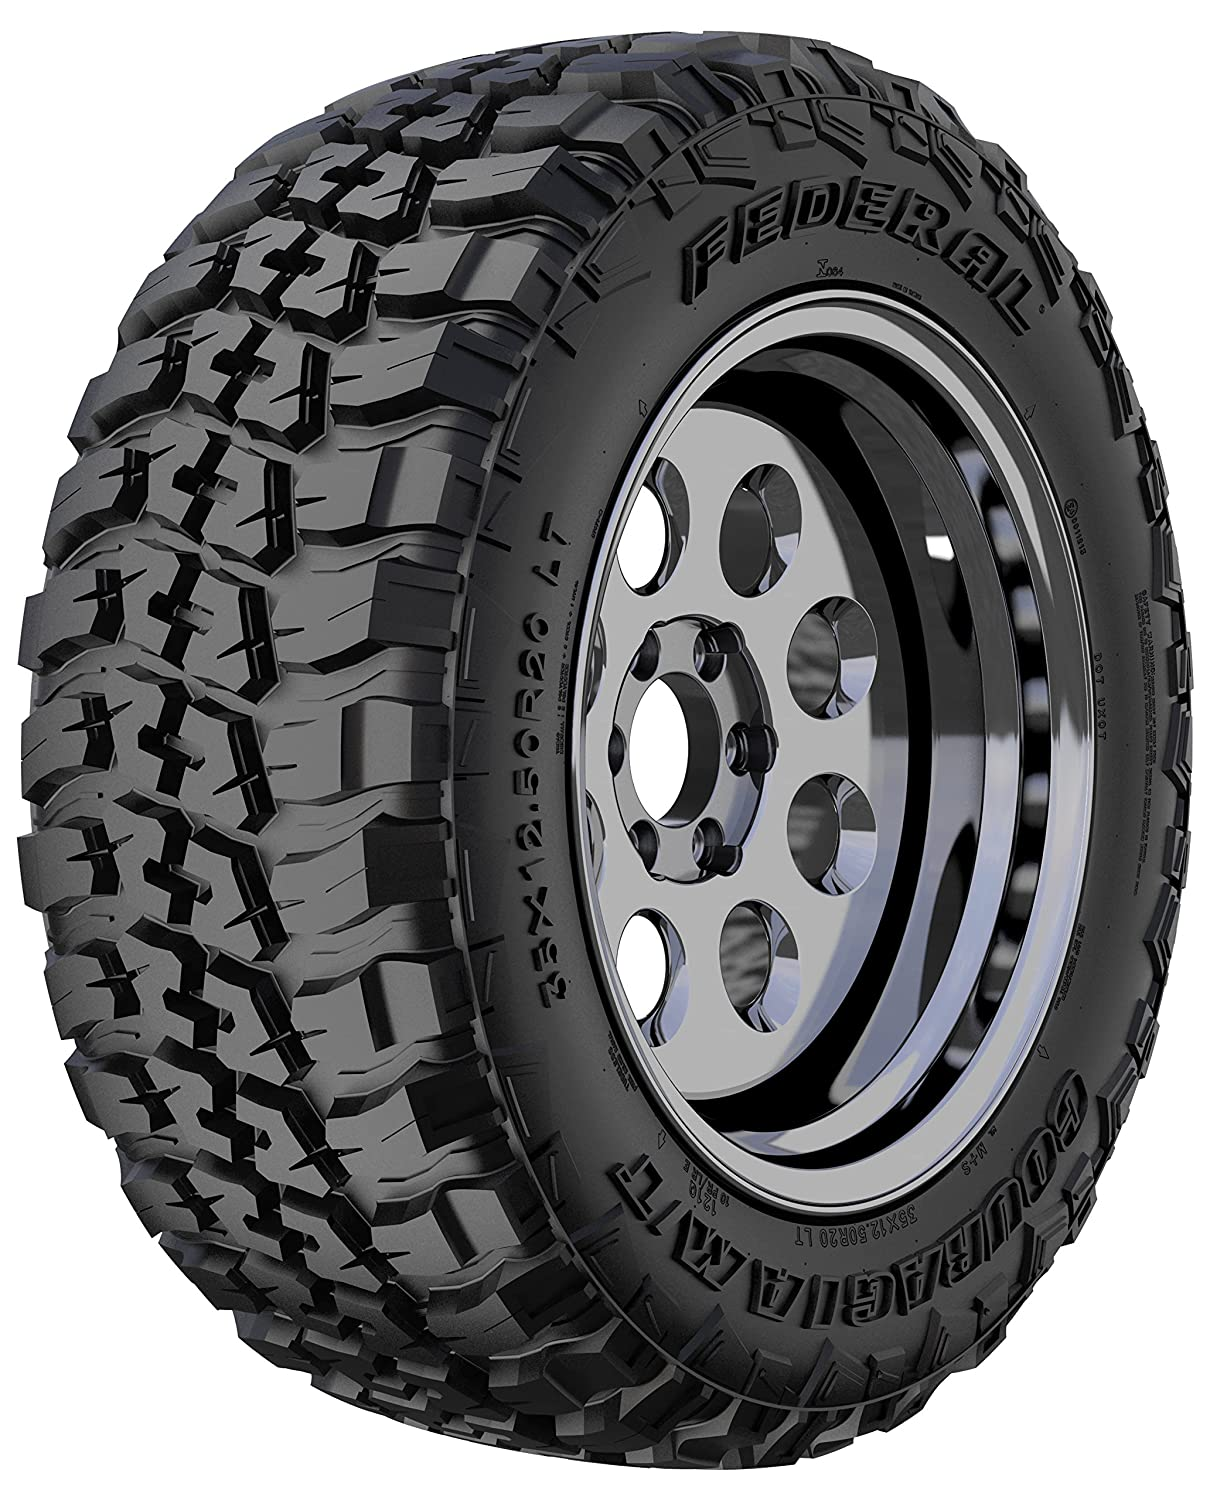 Federal Couragia M/T Mud-Terrain Radial Tire - 35x12.5R18 123Q 46QD8AFE